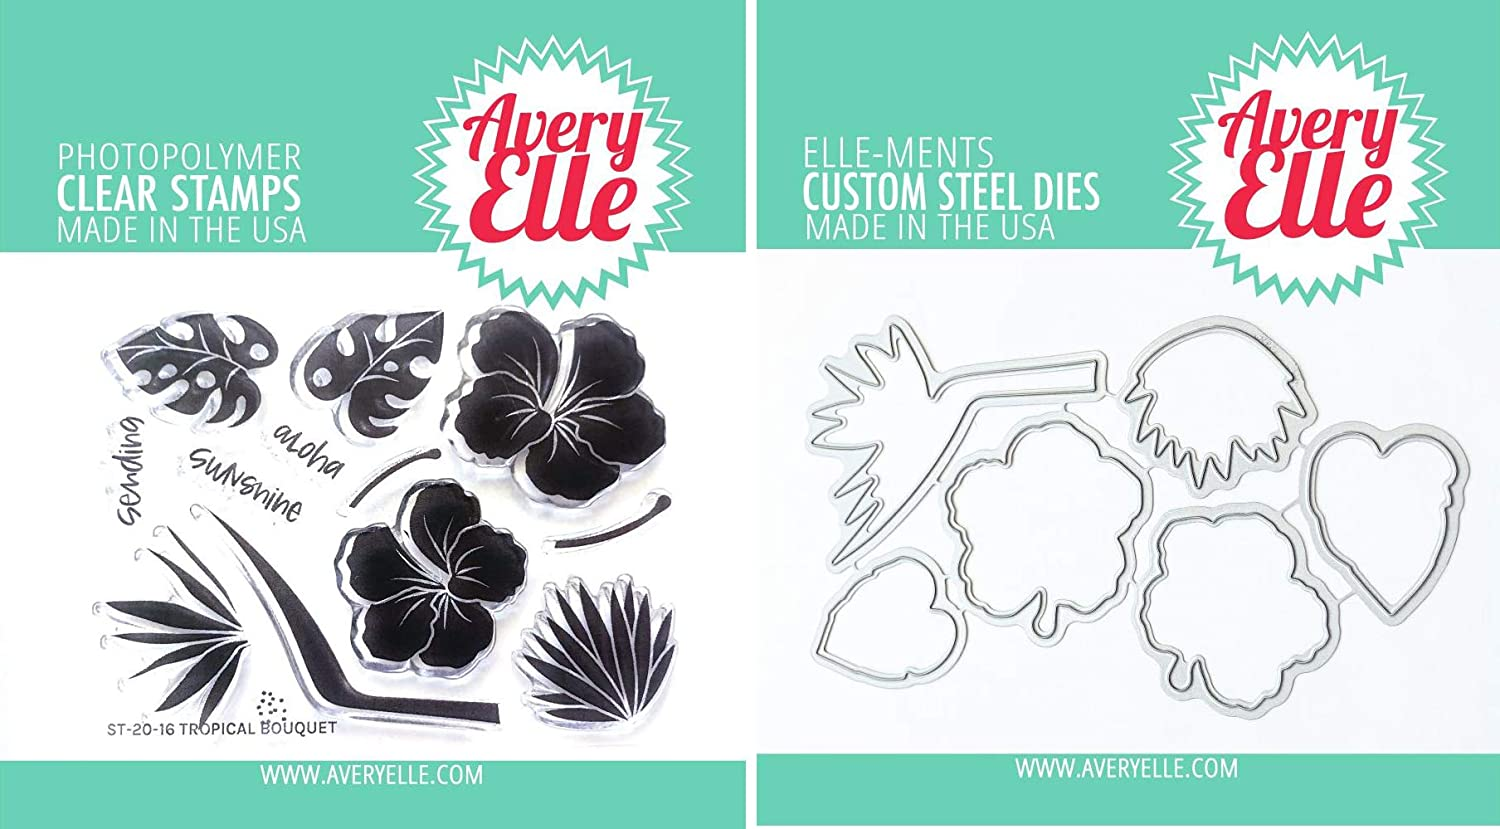 Avery Elle - Tropical Bouquet - Clear Stamps and Dies Set - 2 Item Bundle